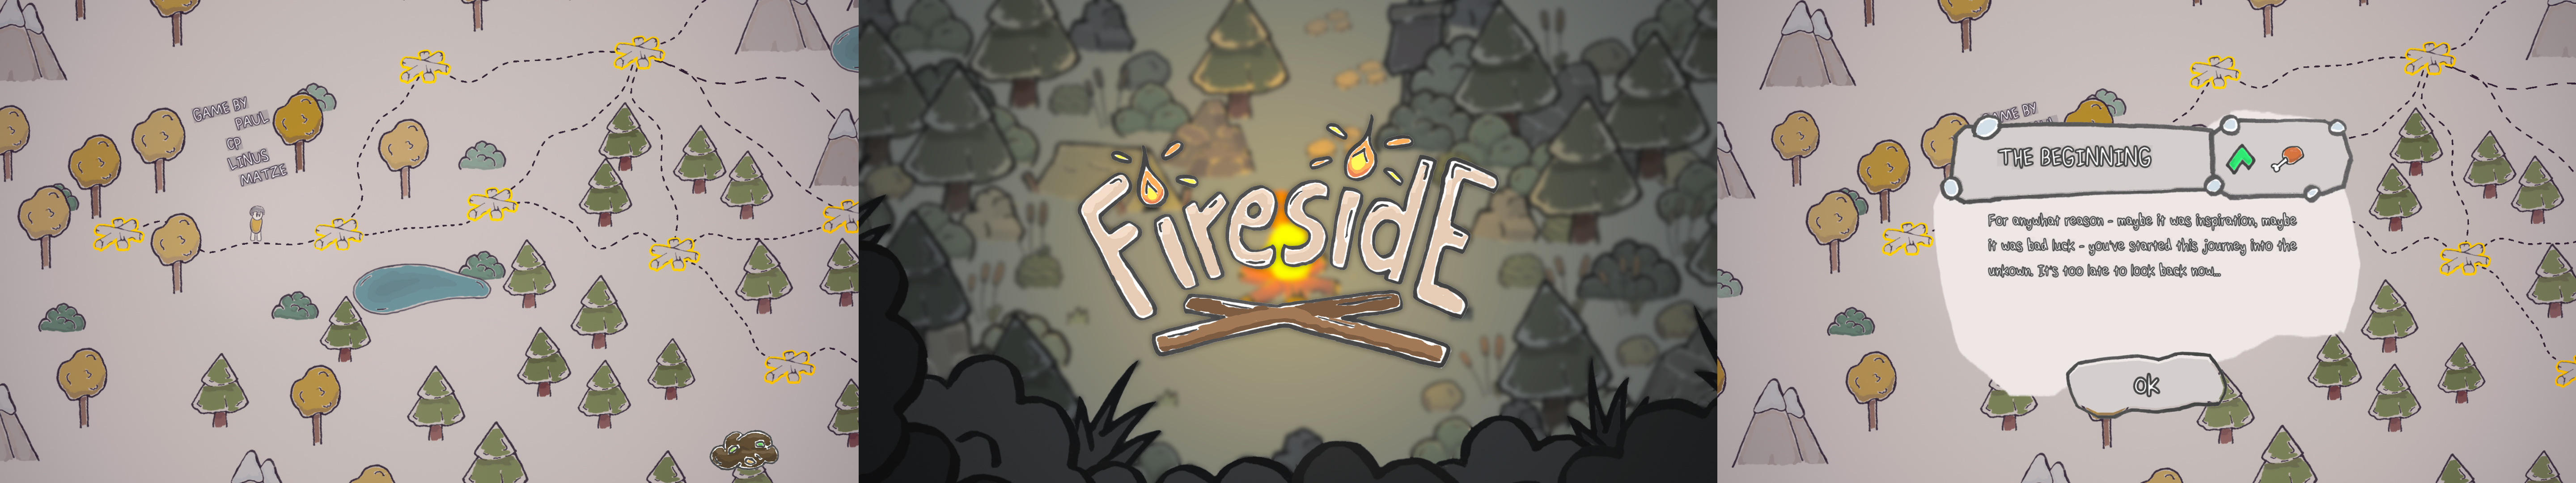 Screenshots of Fireside